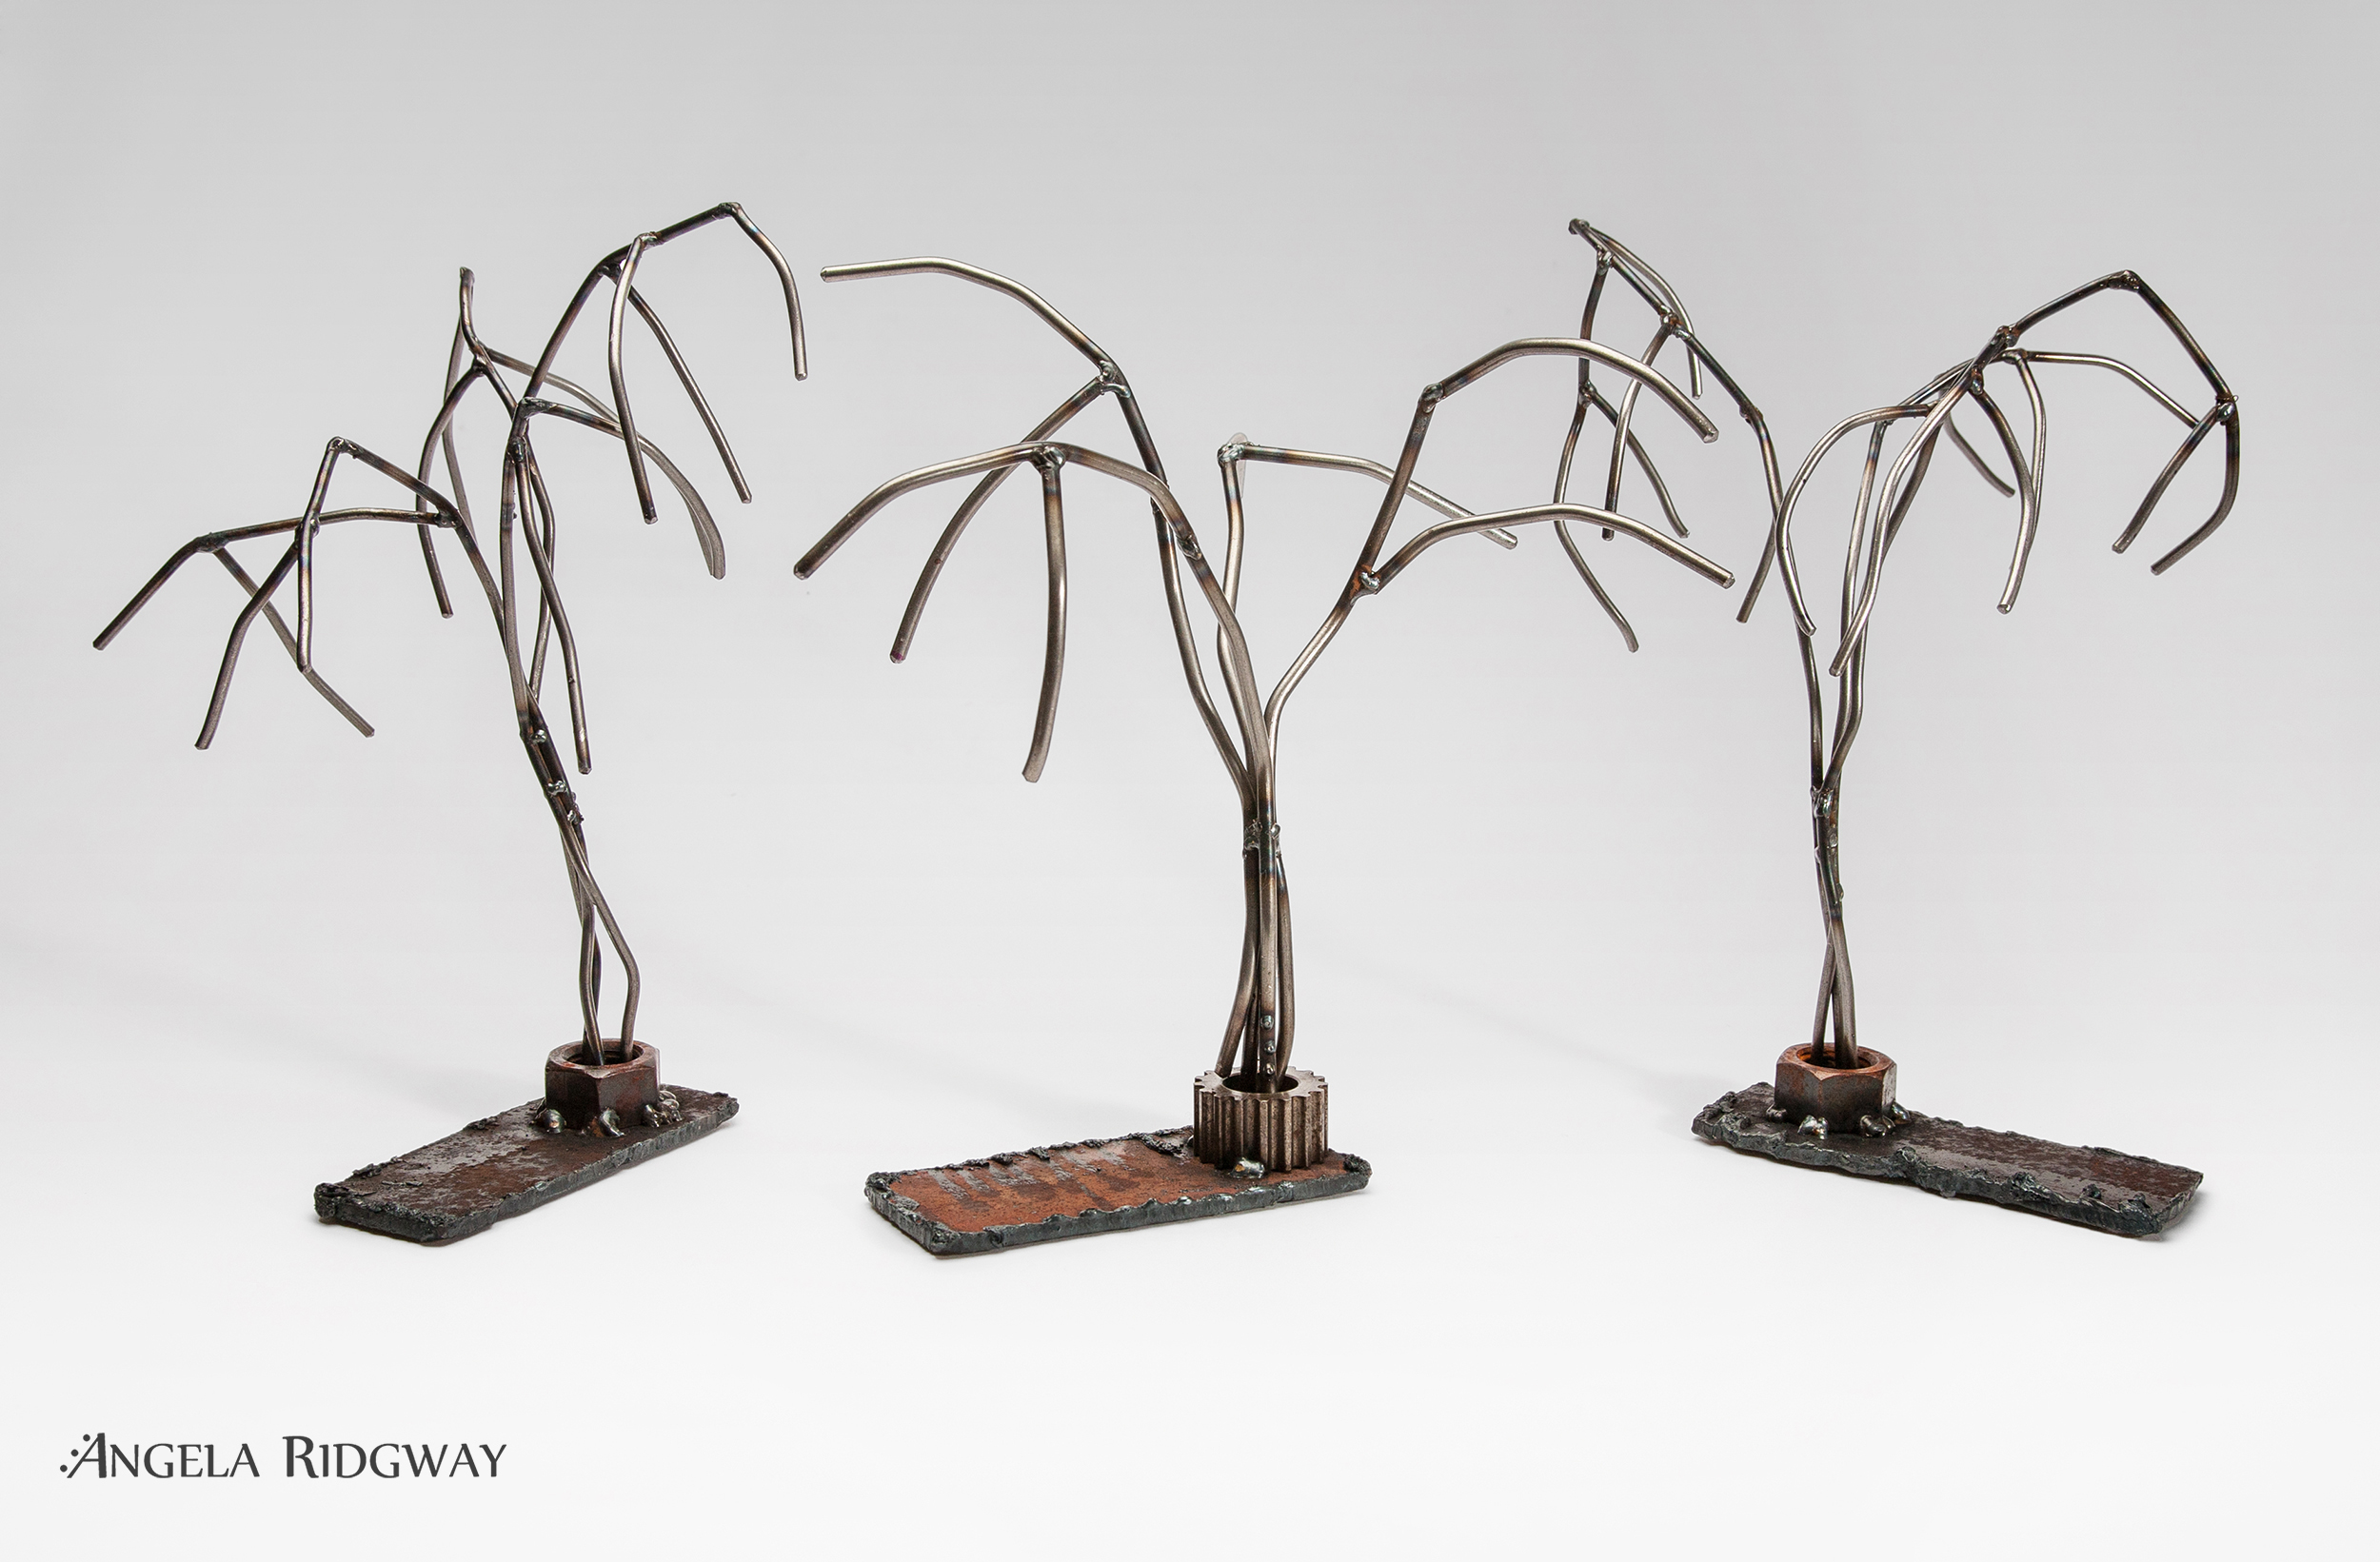 weeping willow 1, 2 & 3